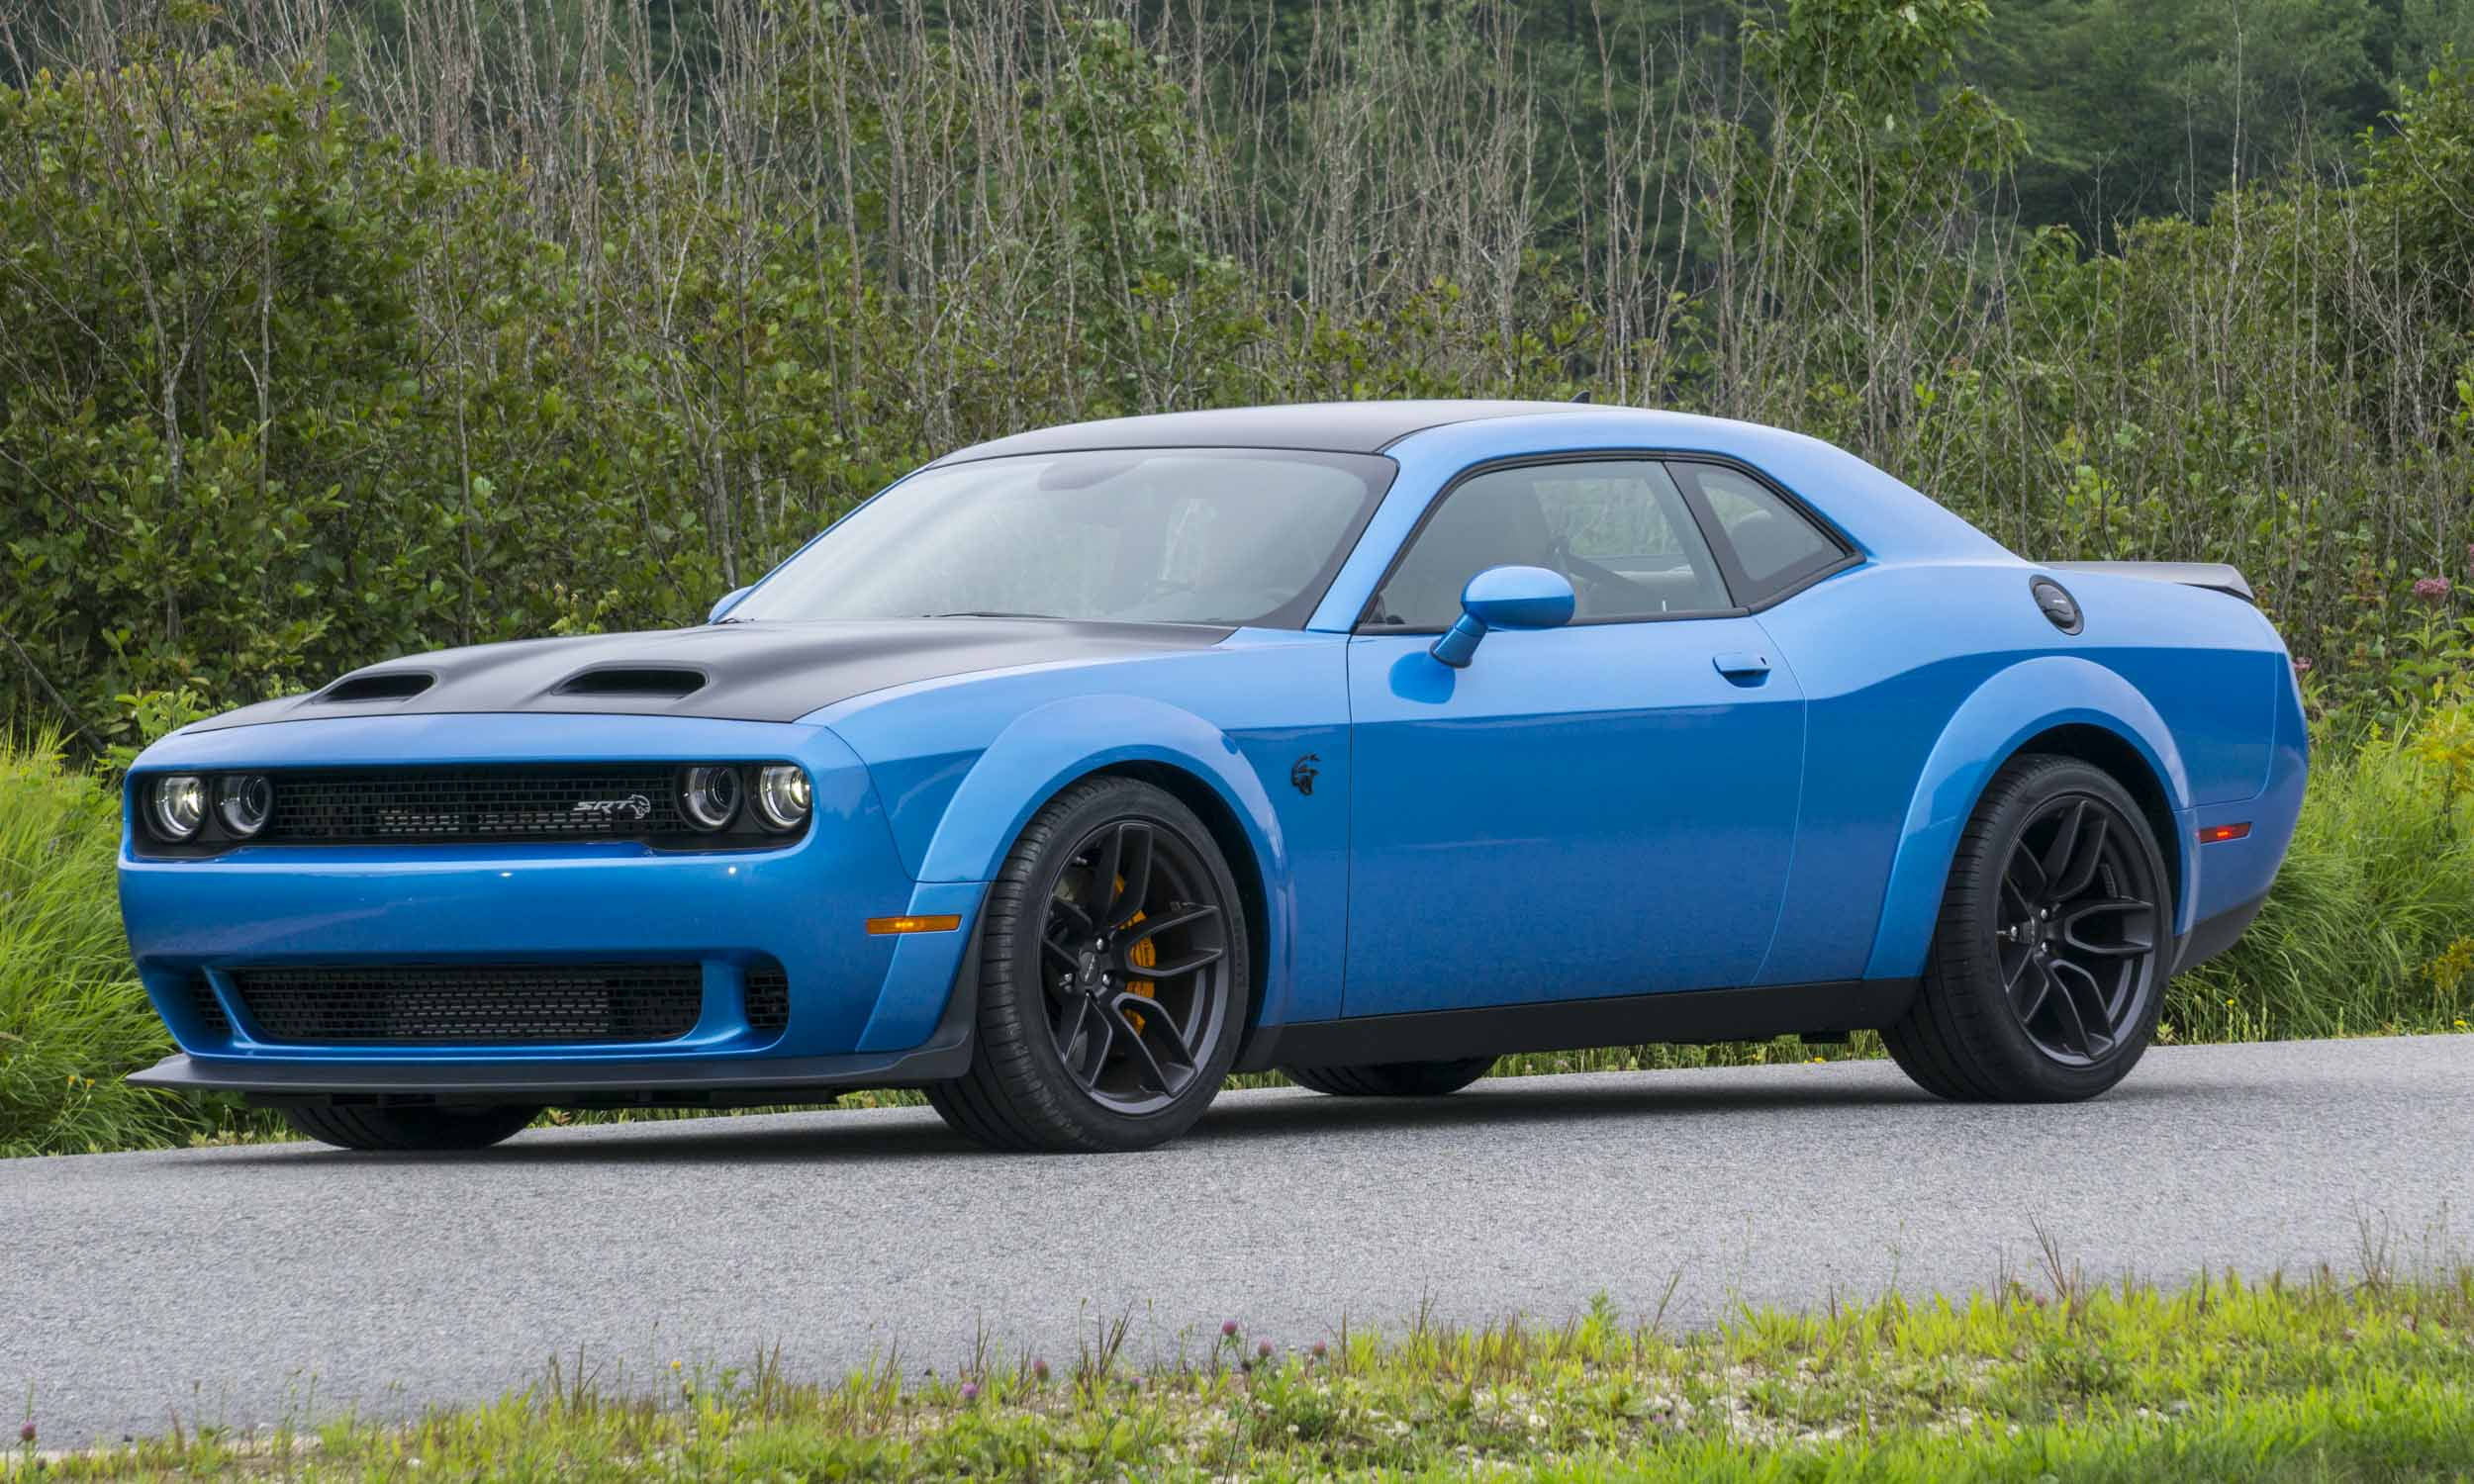 2019 Dodge Challenger Hellcat Redeye: First Drive Review